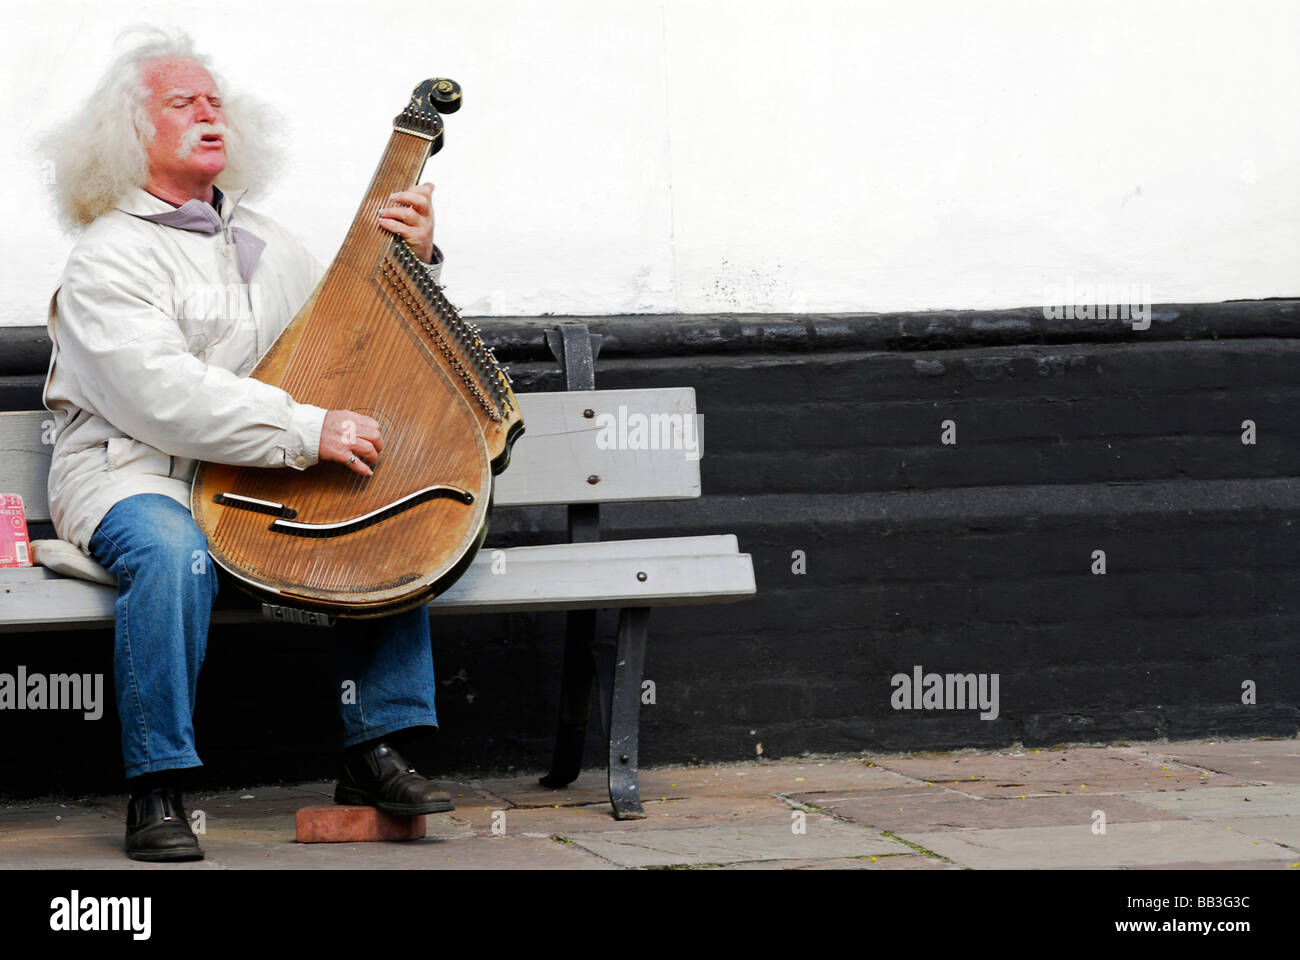 UKRAINE, Kiev. Old man with white long & fuzzy hair sitting on a bench, carrying a lute, his left foot resting - Stock Image